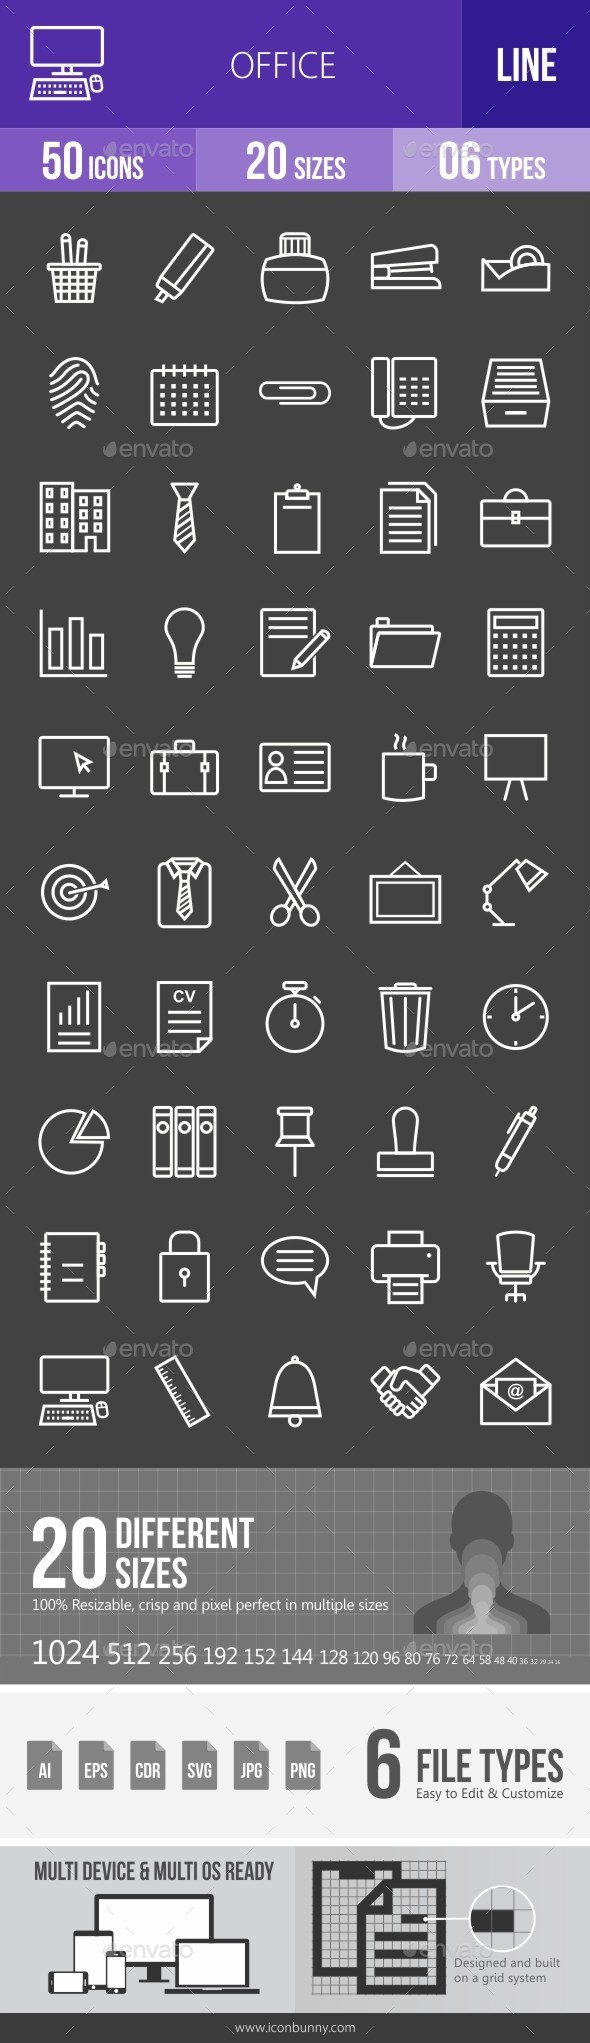 Office Line Inverted Icons - Icons